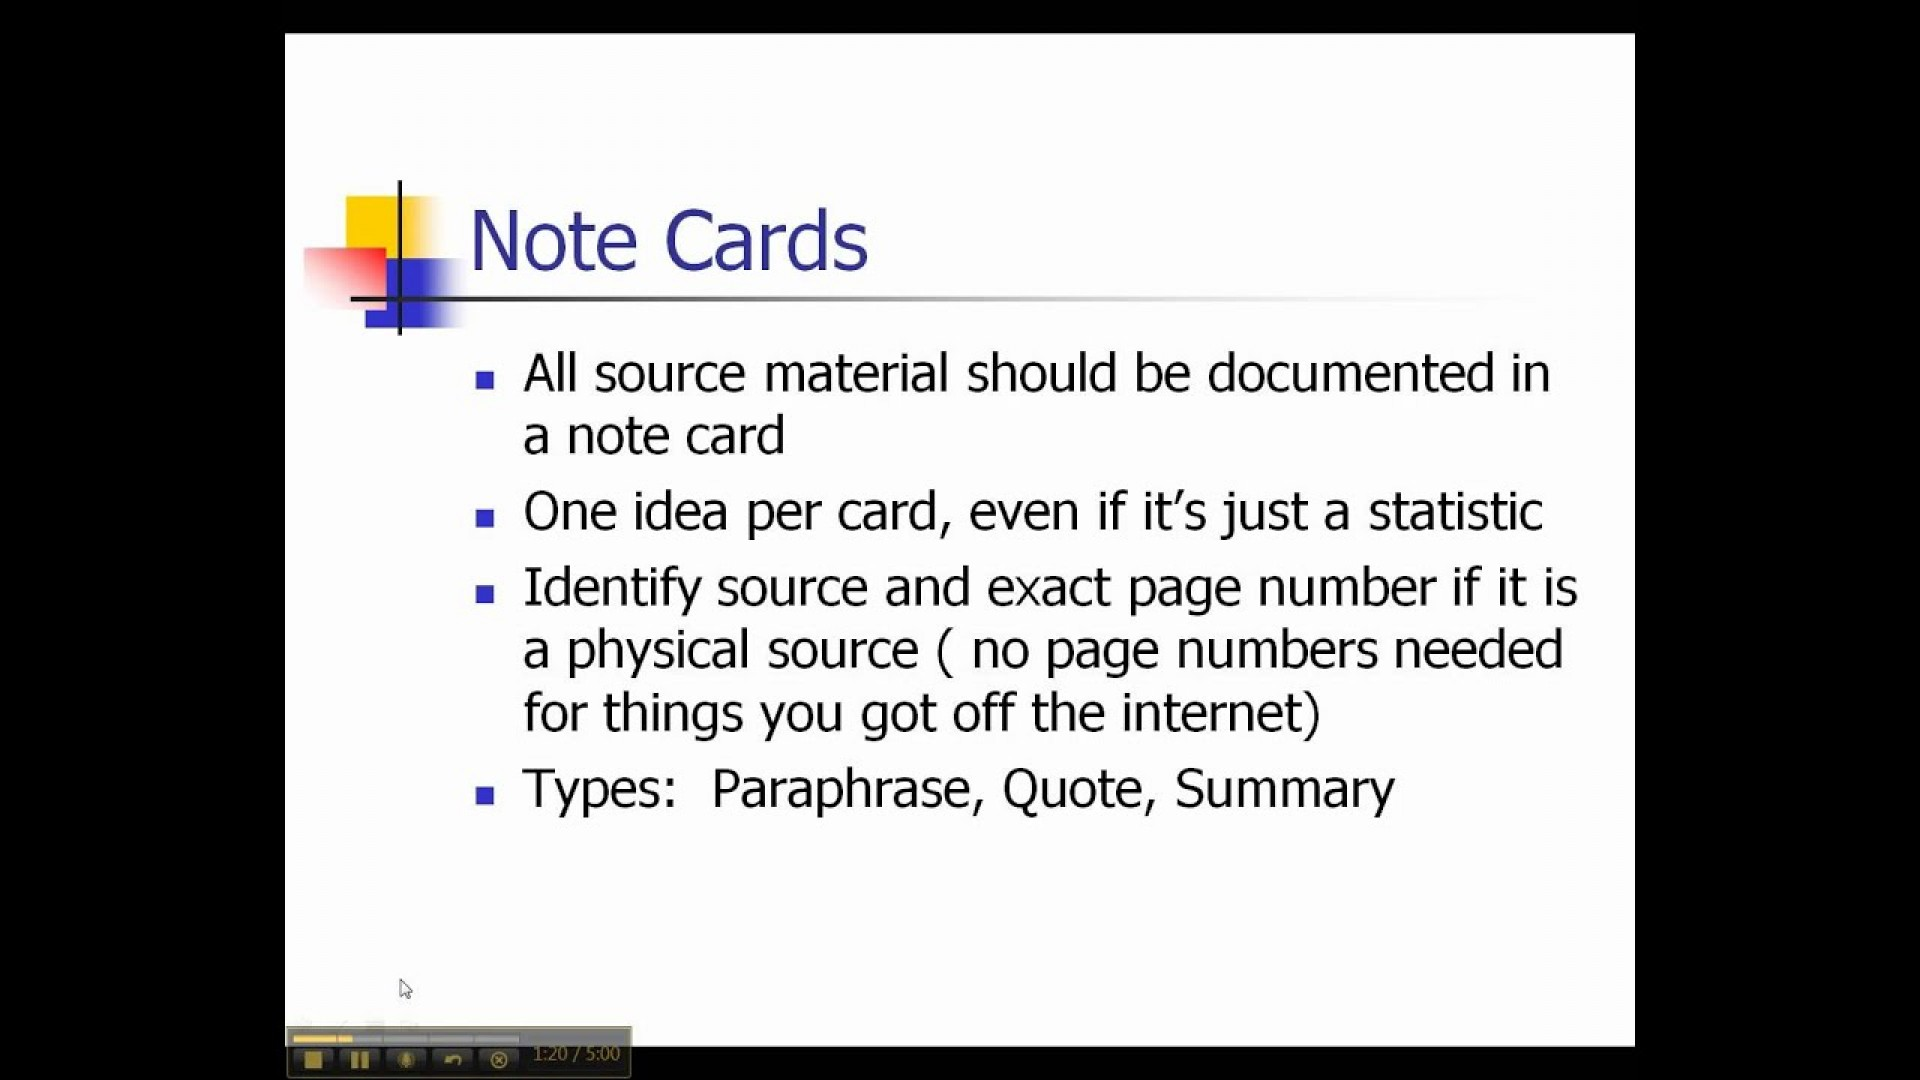 001 Research Paper Notecards For Papers Impressive Sample Mla Online How To Do 1920